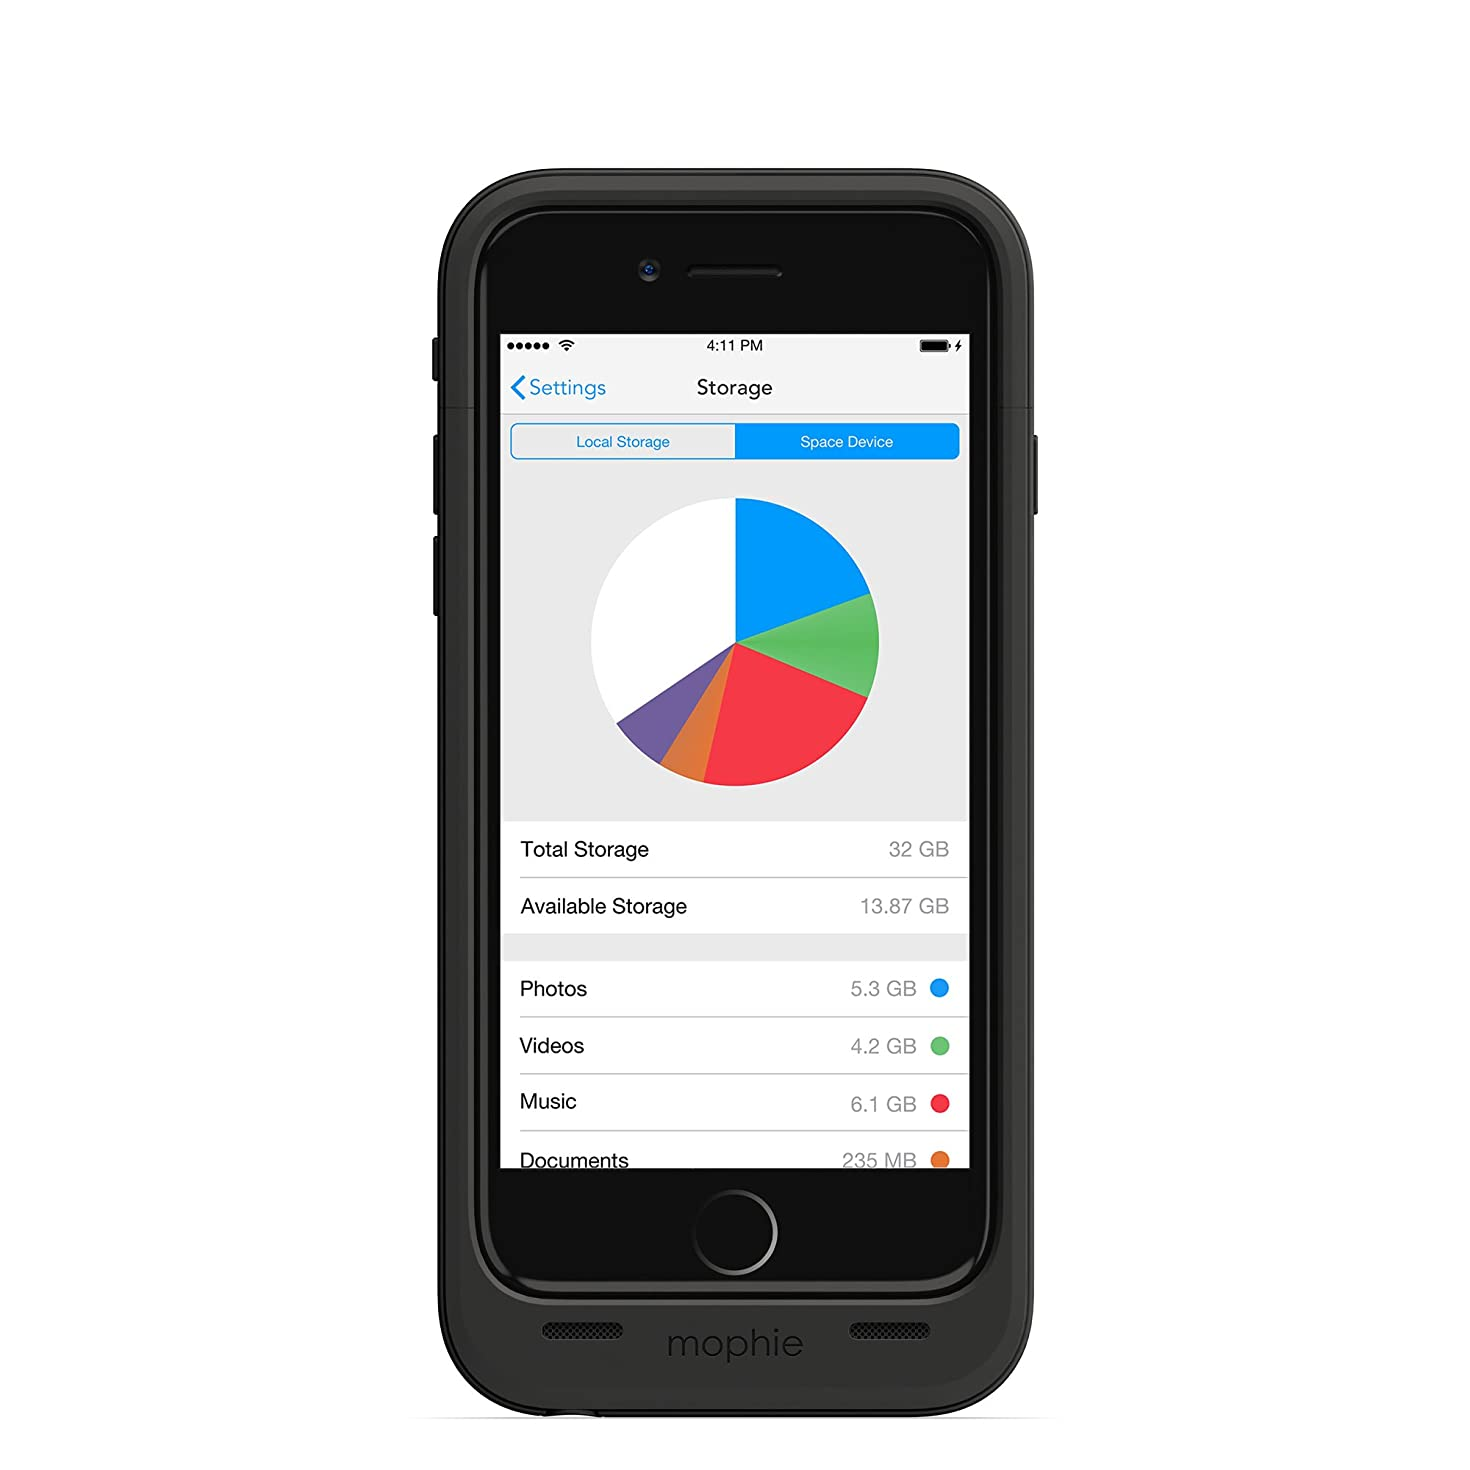 mophie spacepack with Built-In 32GB storage for iPhone 6/6s (3,300mAh) - Black